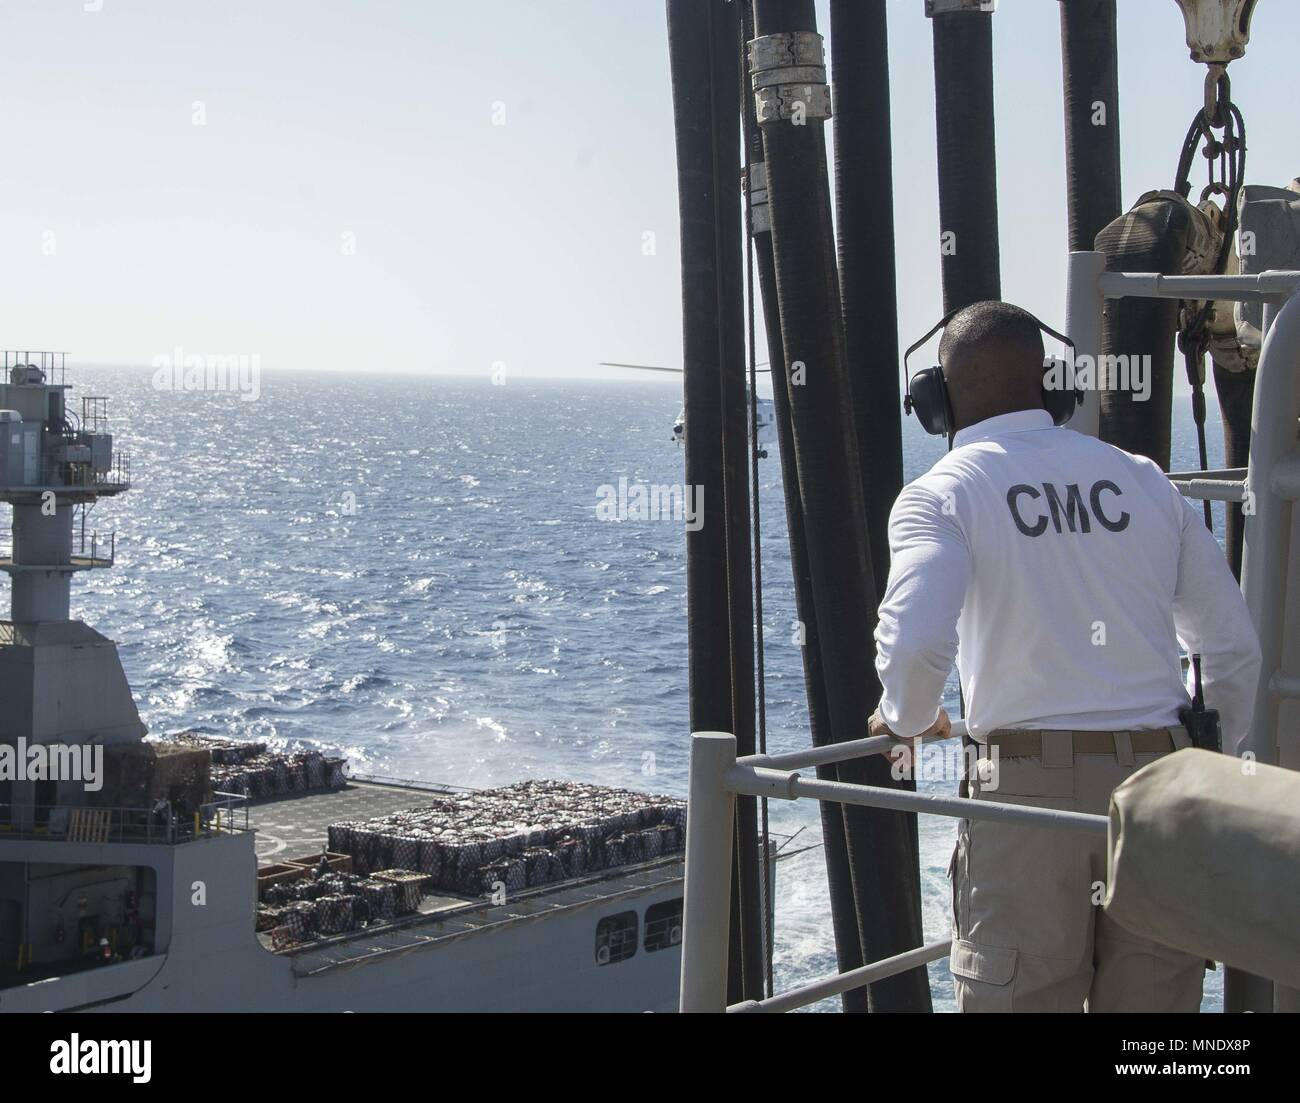 180515-N-AH771-0067 U.S. 5TH FLEET AREA OF OPERATIONS (May 15, 2018) Command Master Chief Ervin H. Byrd III, watches the dry cargo and ammunition ship USNS Amelia Earhart (T-AKE 6) come alongside the Wasp-class amphibious assault ship USS Iwo Jima (LHD 7) during a replenishment-at-sea, May 15, 2018, May 15, 2018. Iwo Jima, homeported in Mayport, Fla. is on deployment to the U.S. 5th Fleet area of operations in support of maritime security operations to reassure allies and partners, and preserve the freedom of navigation and the free flow of commerce in the region. (U.S. Navy photo by Mass Comm Stock Photo